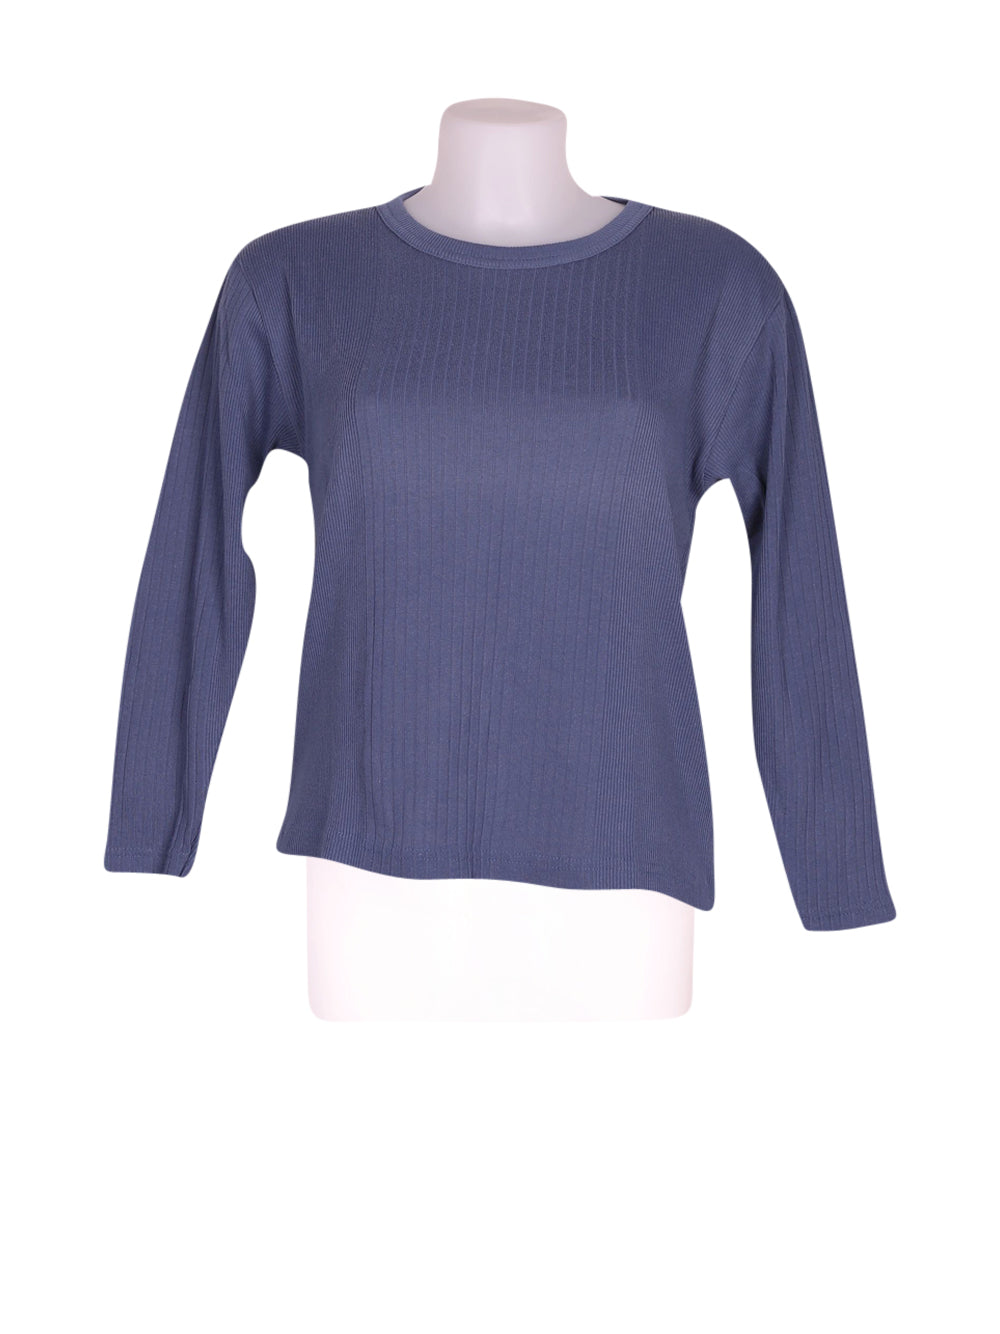 Front photo of Preloved Naf Naf Blue Woman's sweater - size 8/S